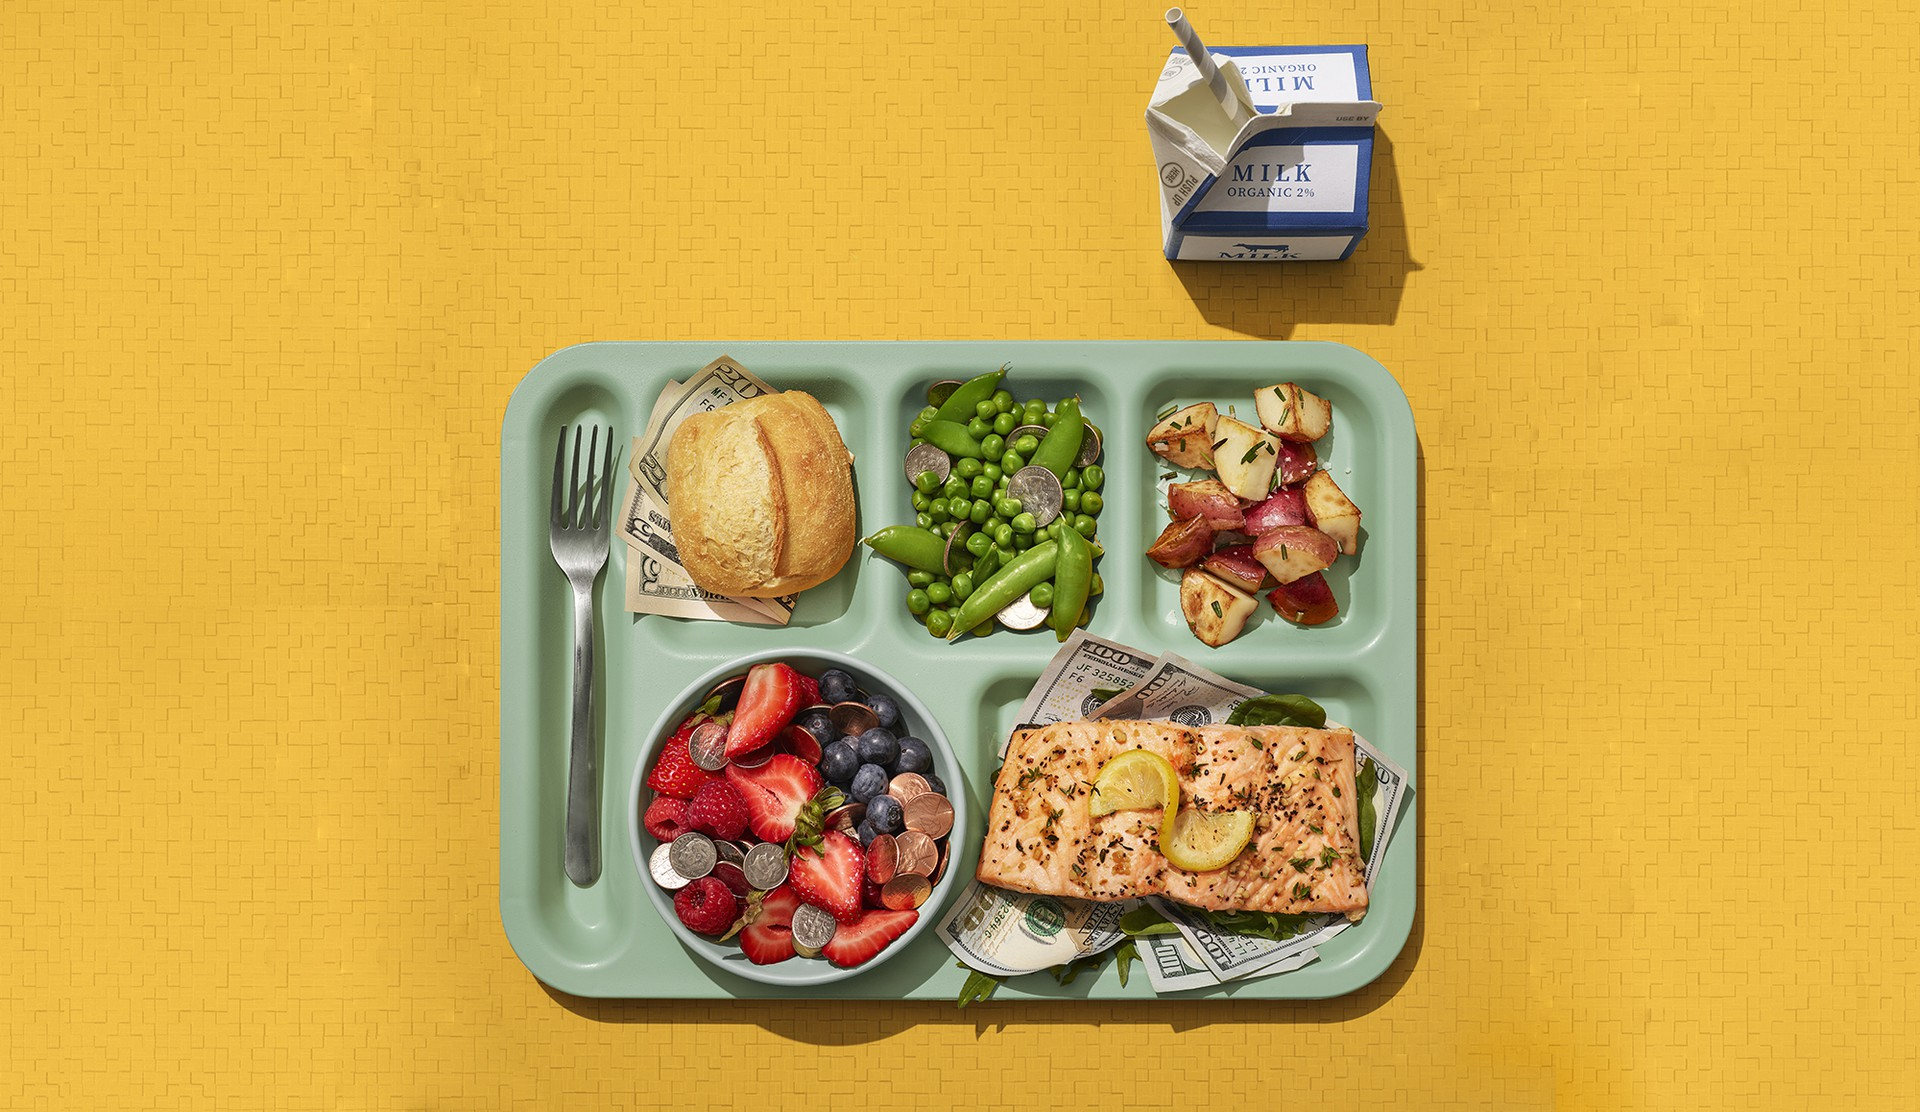 Tray with food and cash.